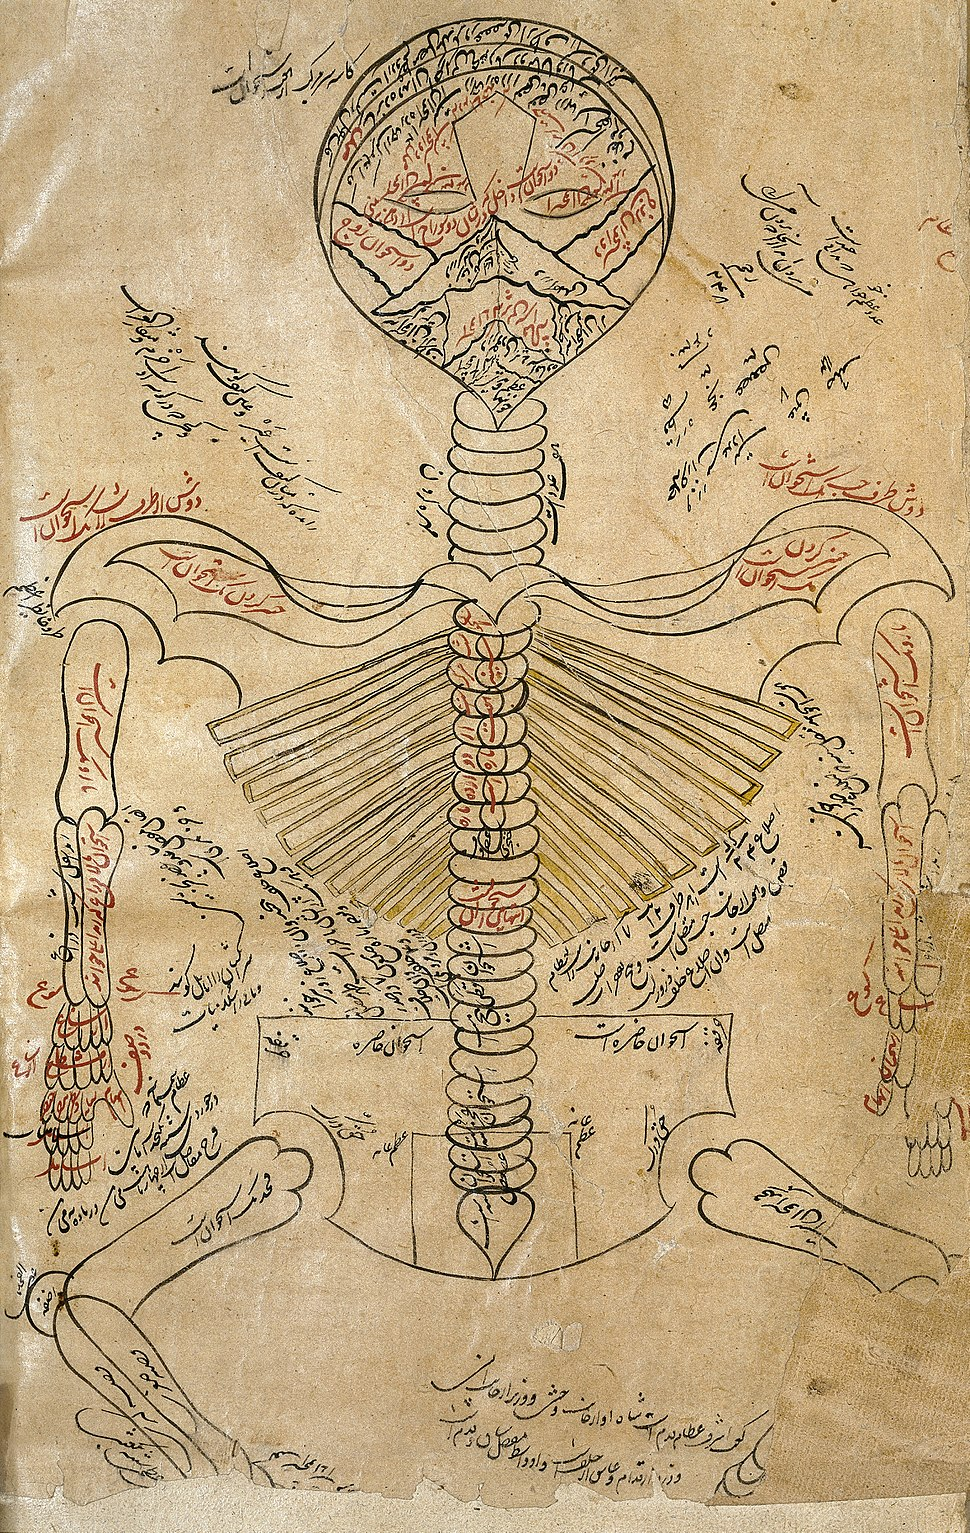 Skeleton system., Avicenna, Canon of Medicine Wellcome L0013314